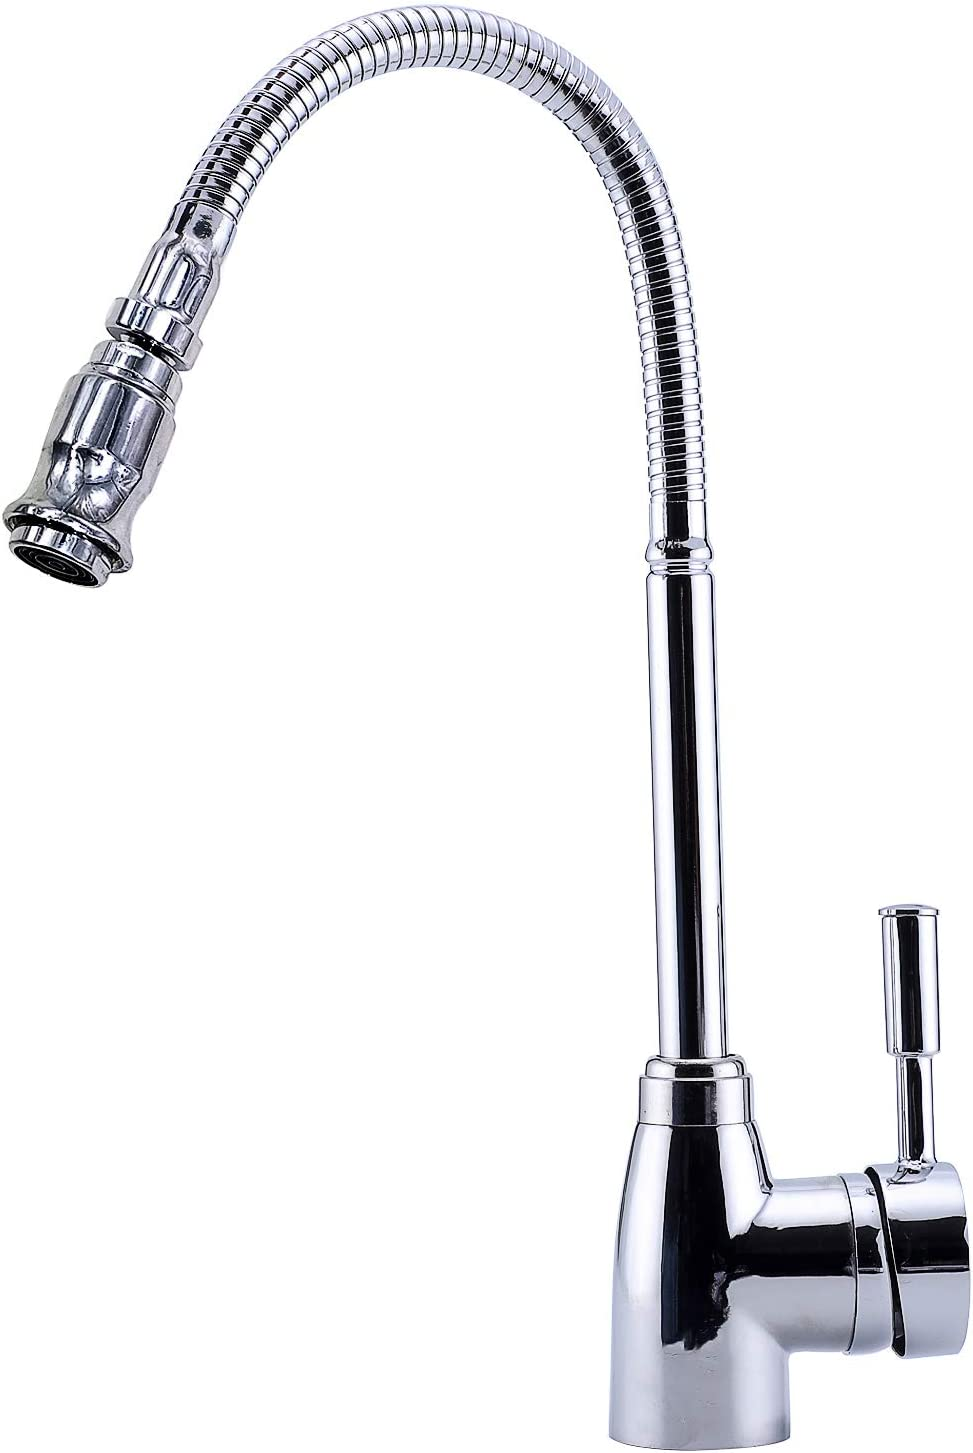 Kitchen Sink Faucet Spray Single Handle Pull Down Commercial Bar Faucet Chrome Mixer Tap 360 Degree Swivel Spray Head Adjustable Hot And Cold Water